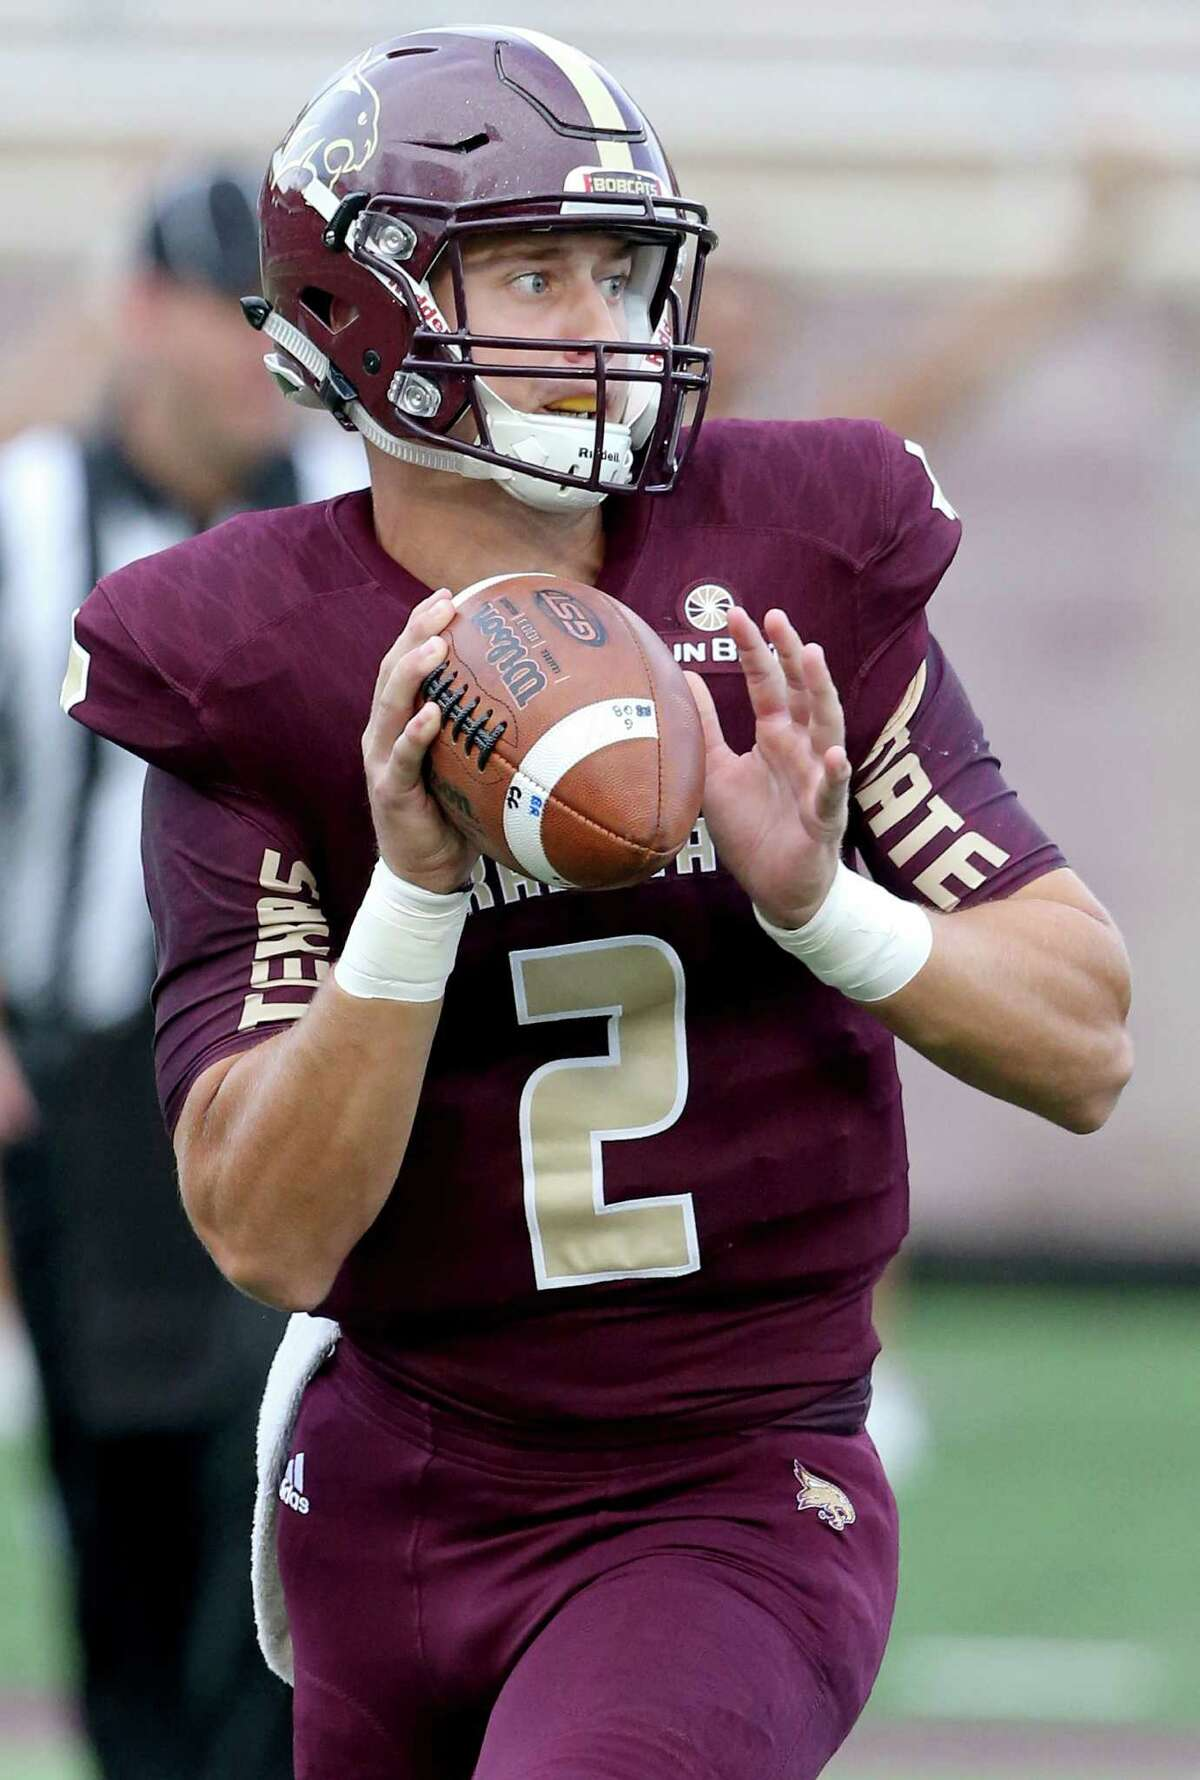 Texas State Bobcats quarterback Tyler Jones looks to pass during first half action against the Houston Cougars Saturday Sept. 24, 2016 at Bobcat Stadium in San Marcos, Tx.